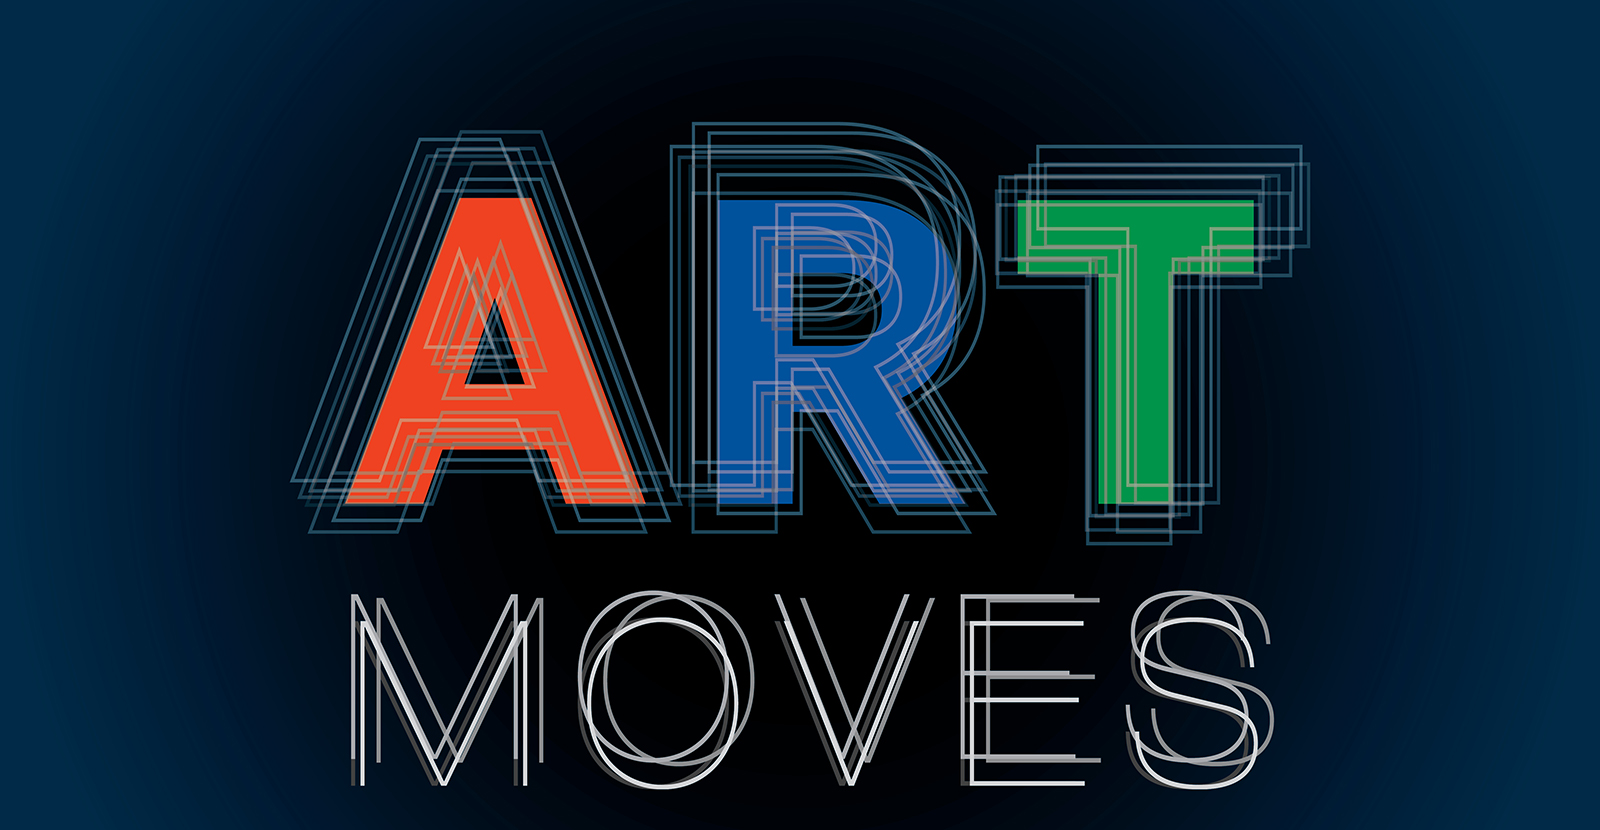 Artists are invited to be part of ArtMoves, a new public art installation to transform the streets of Kingsford and Kensington